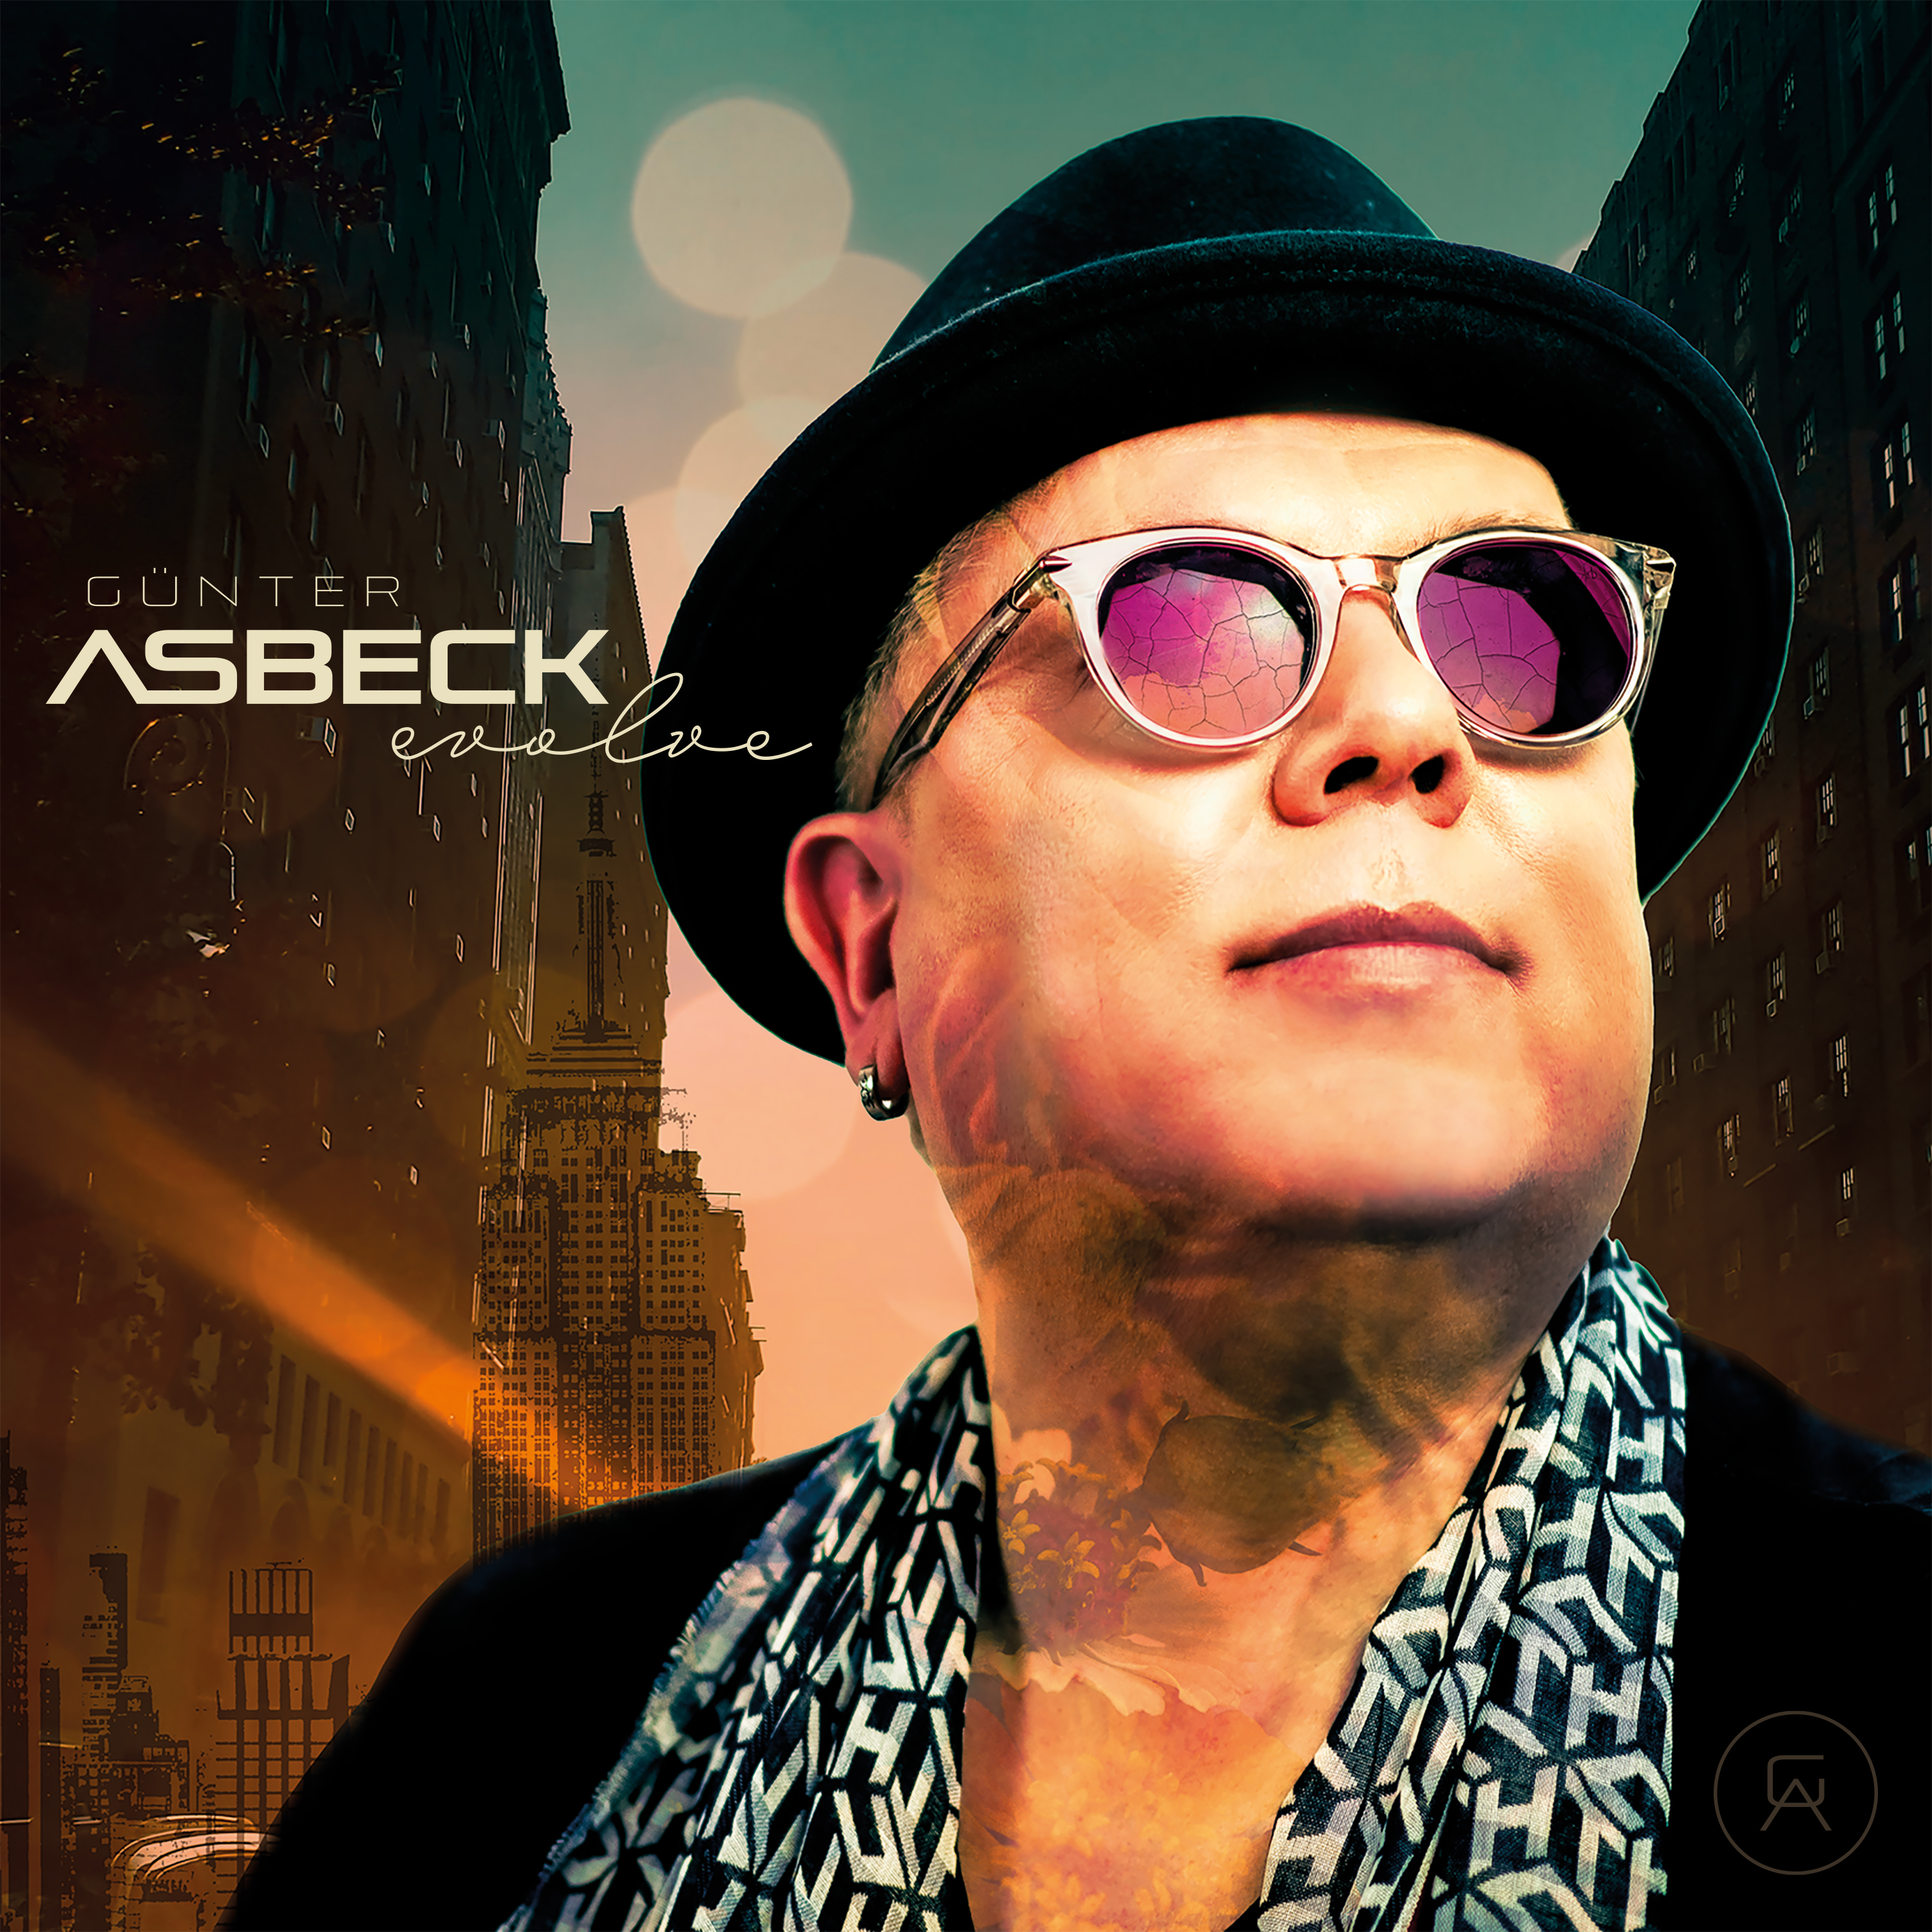 Groundbreaking Blend of Pop and Rock With Günter Asbeck's 'Evolve'